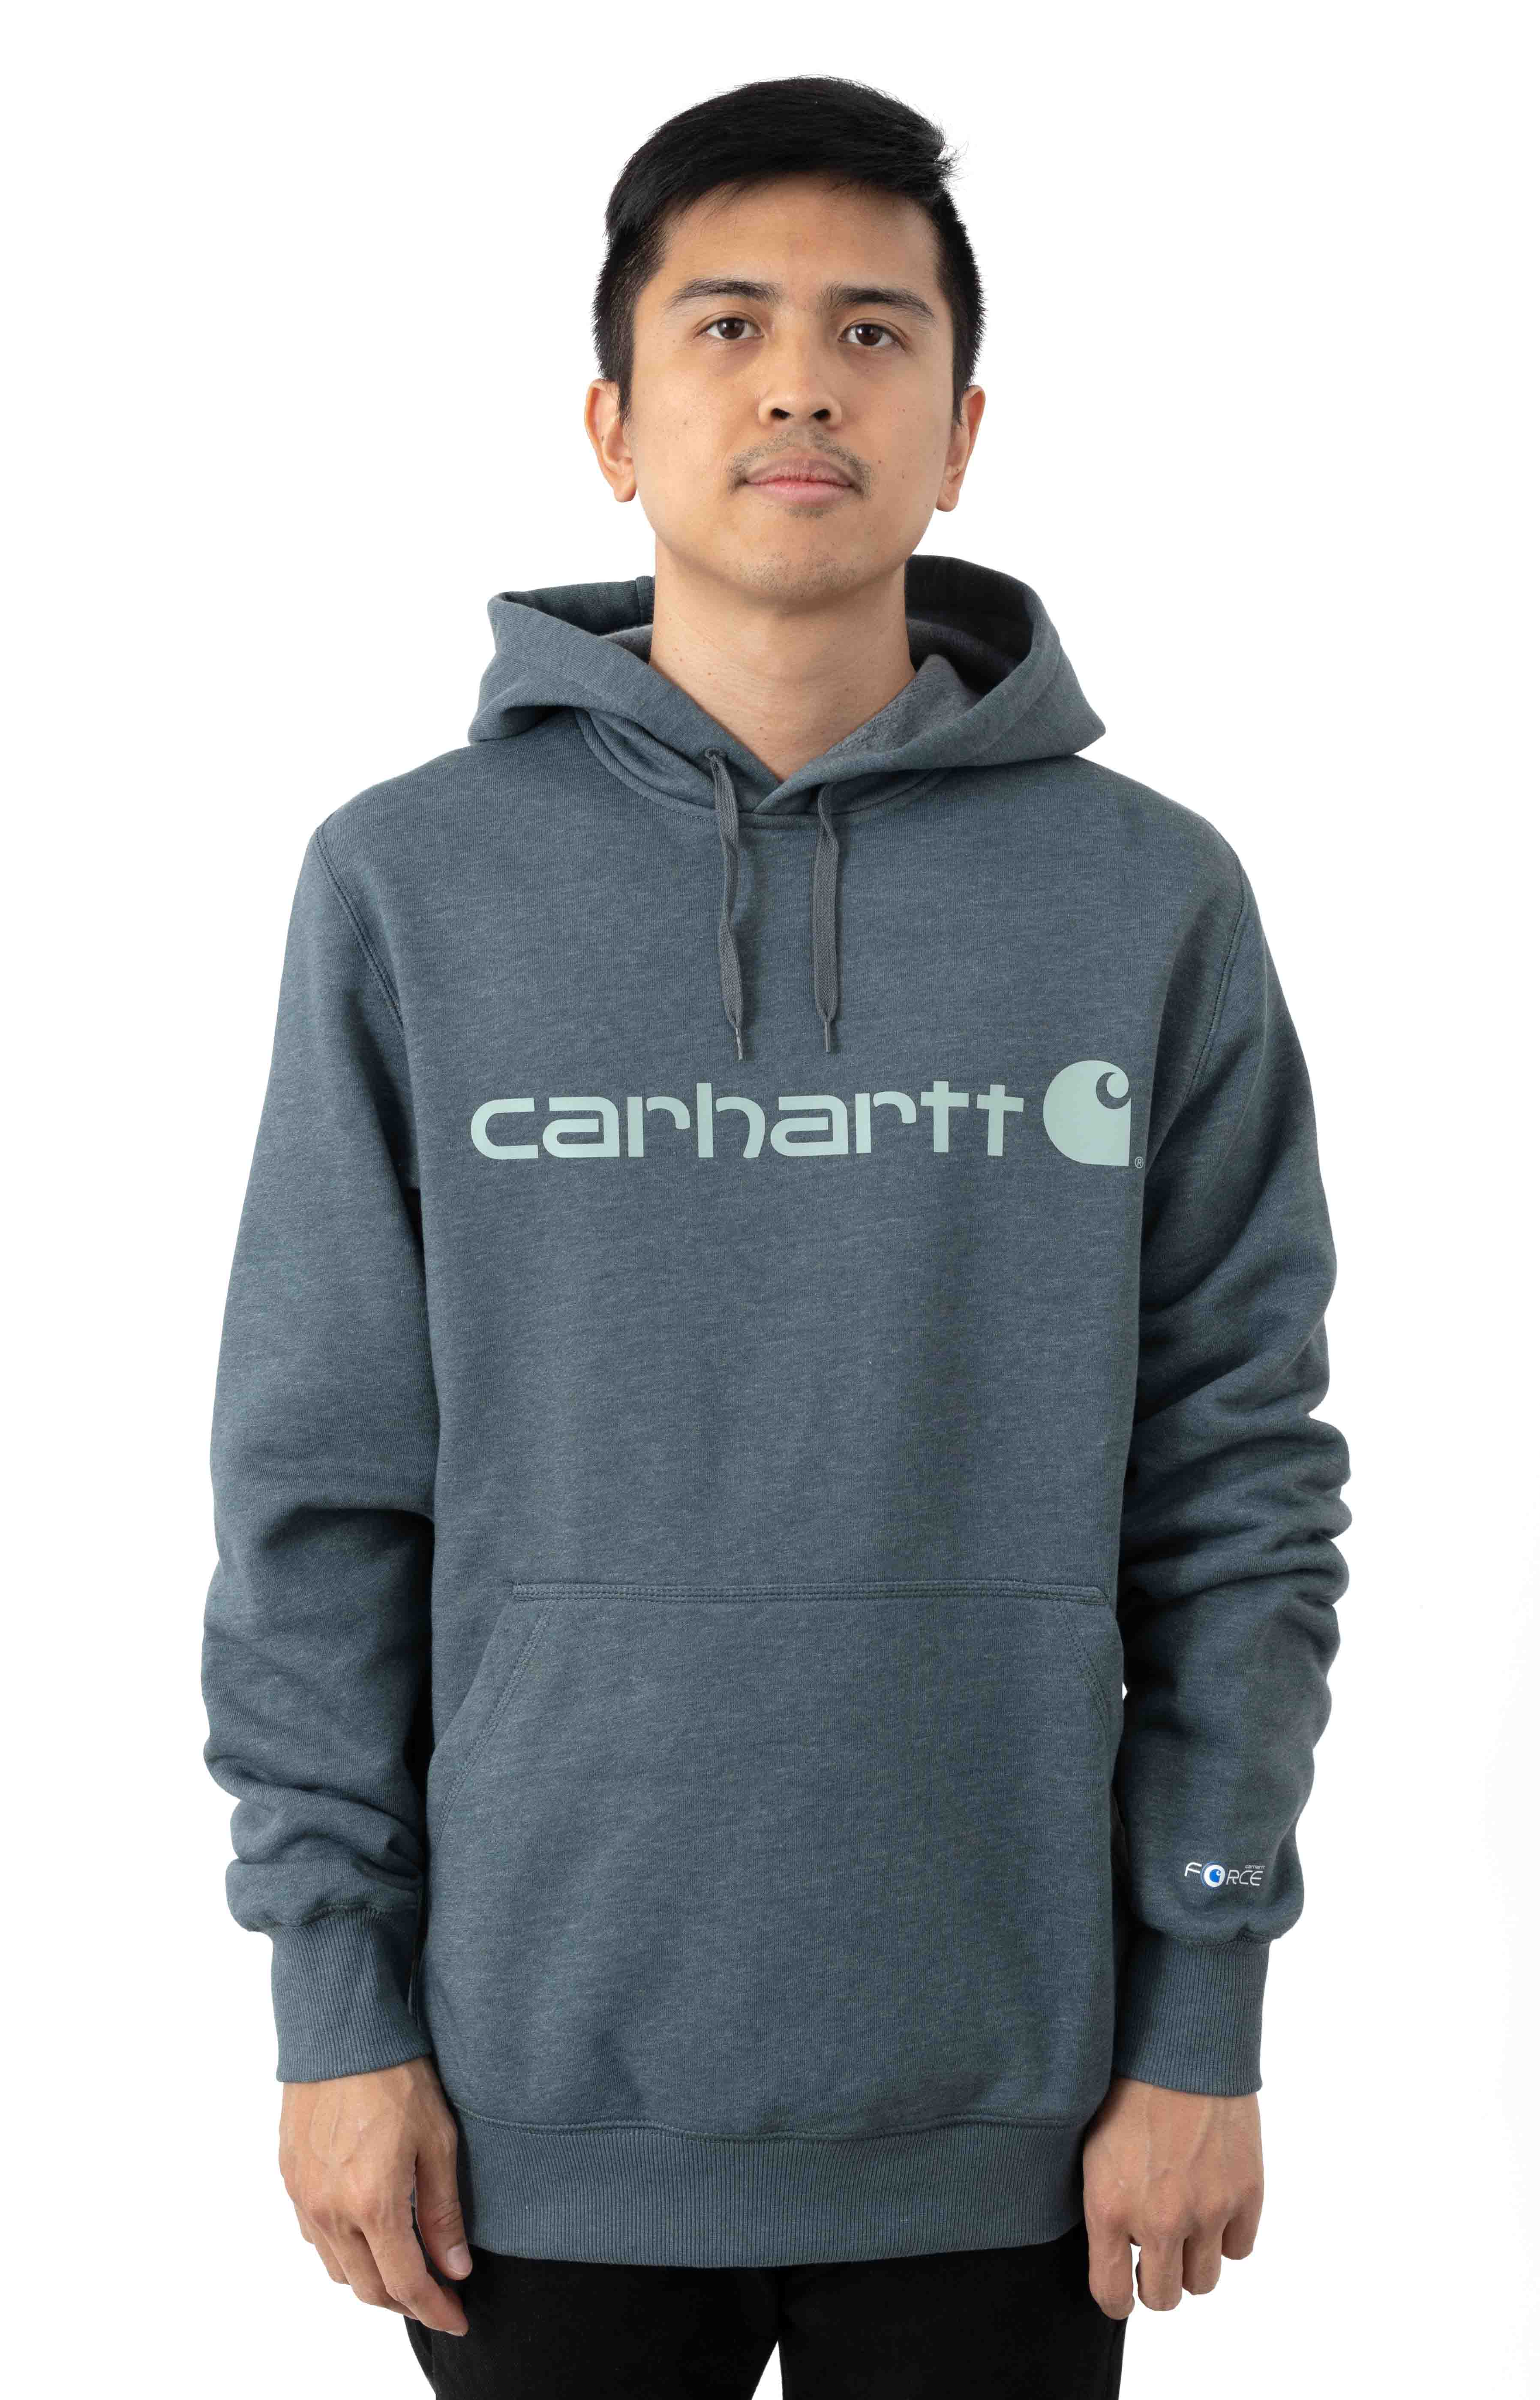 (103873) Force Delmont Signature Graphic Pullover Hoodie - Ink Green Heather